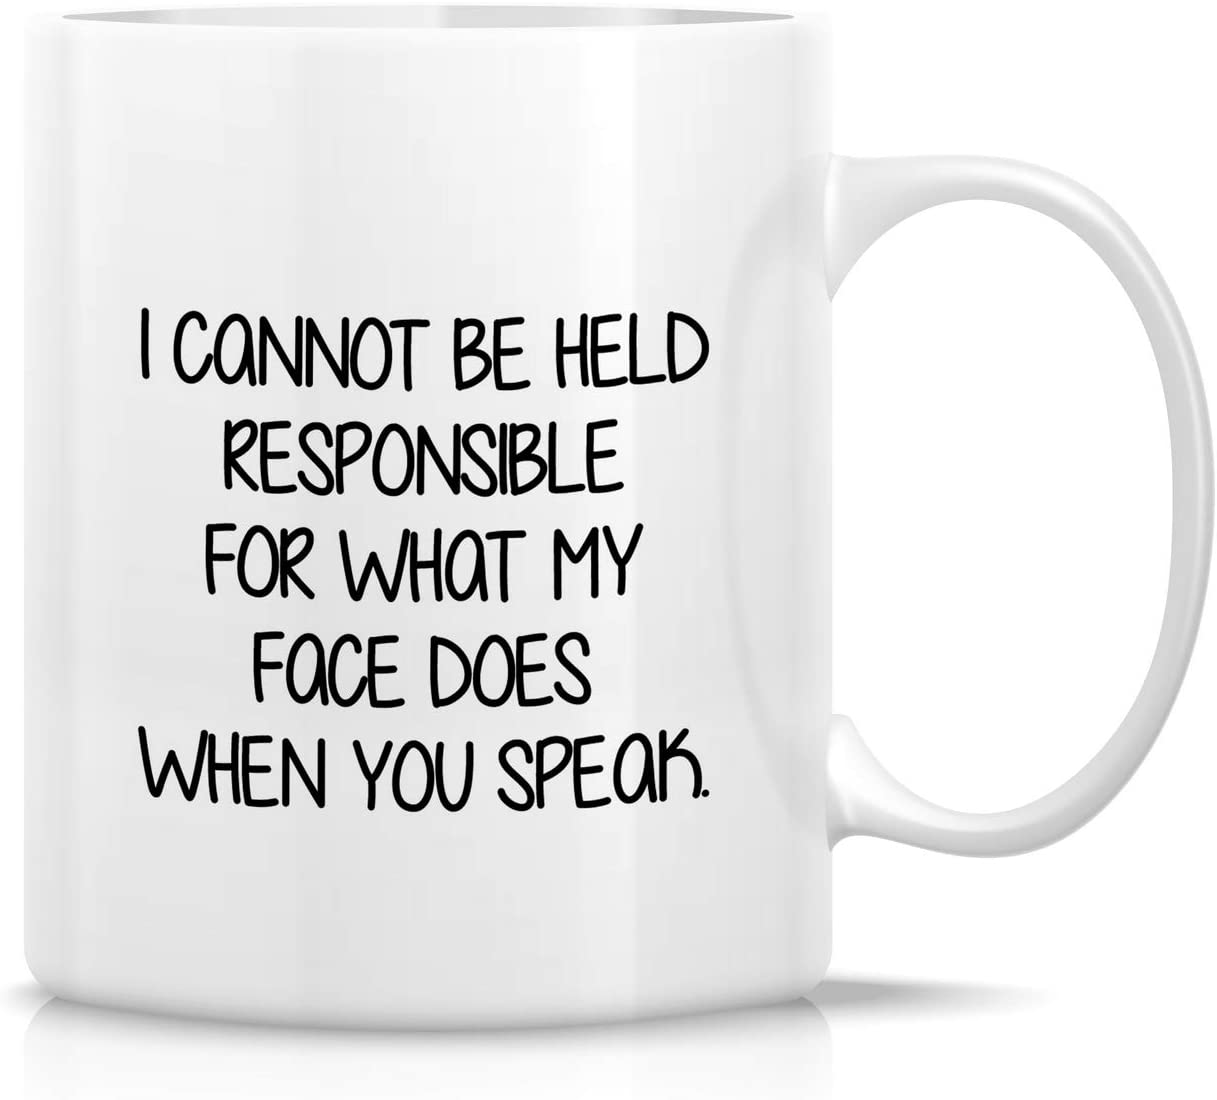 Retreez Funny Mug - I Cannot Be Held Responsible For What My Face Does When You Speak 11 Oz Ceramic Coffee Tea Mugs - Funny, Sarcasm, Sarcastic, birthday gifts for friends, coworkers, sister, brother